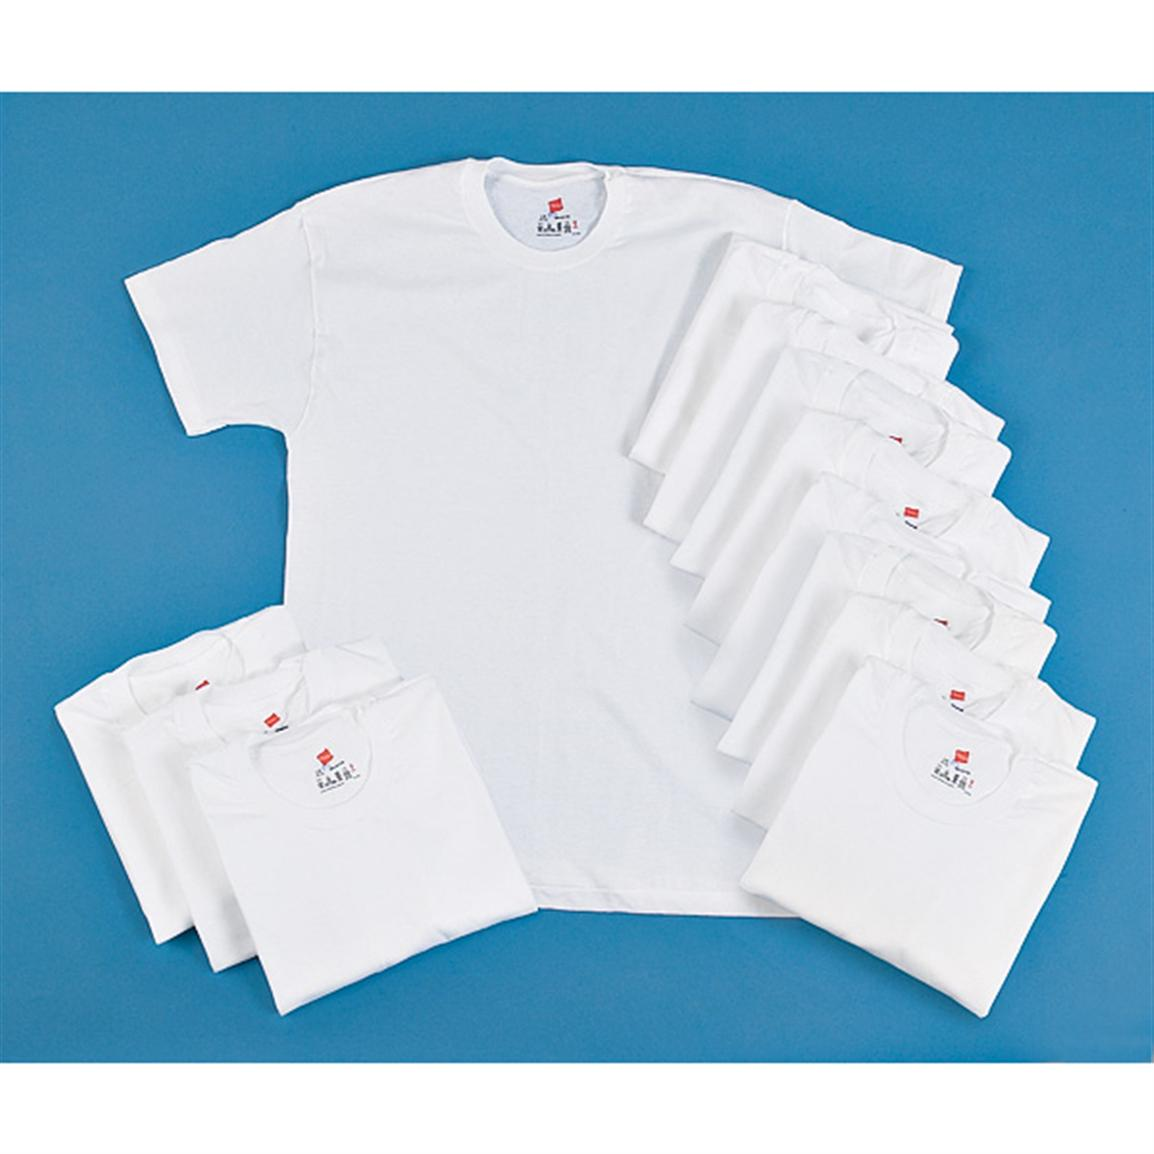 12 New Cotton Crew-neck T-shirts, White